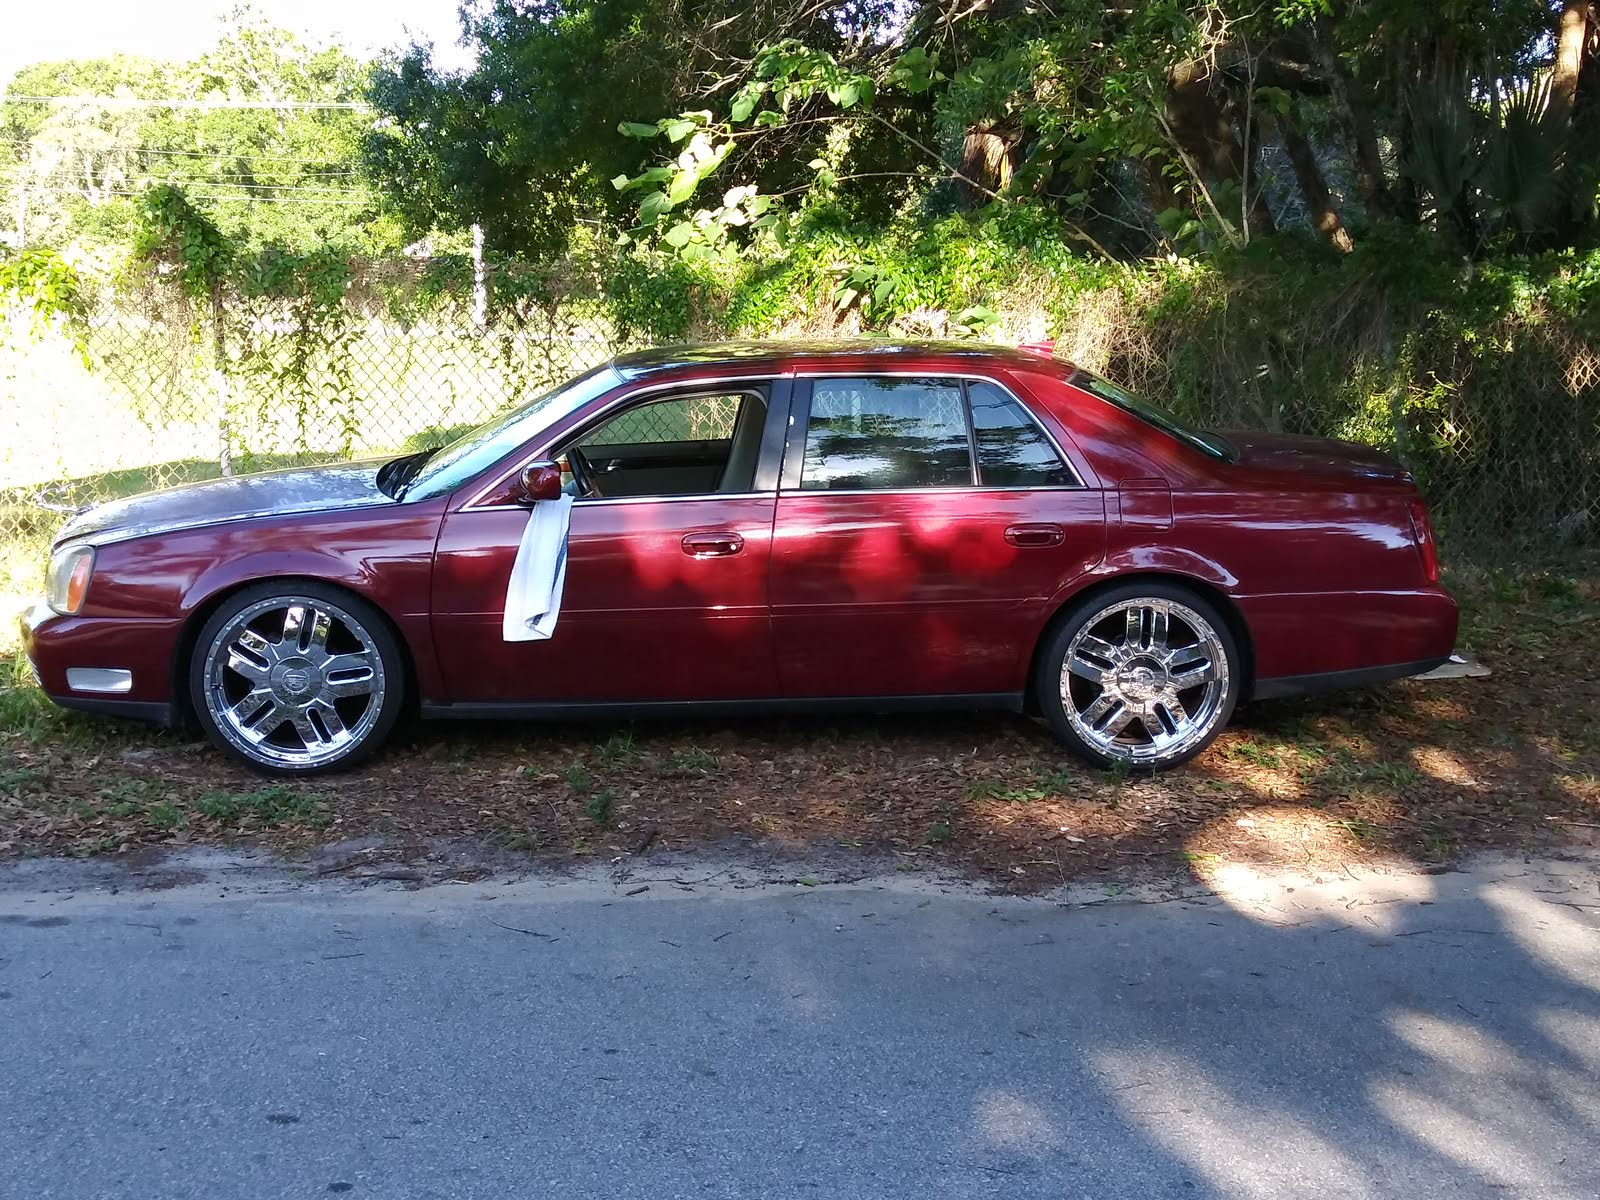 cadillac deville questions will 24 inch rims fit 0n a 2001 cadillac deville cargurus 2001 cadillac deville